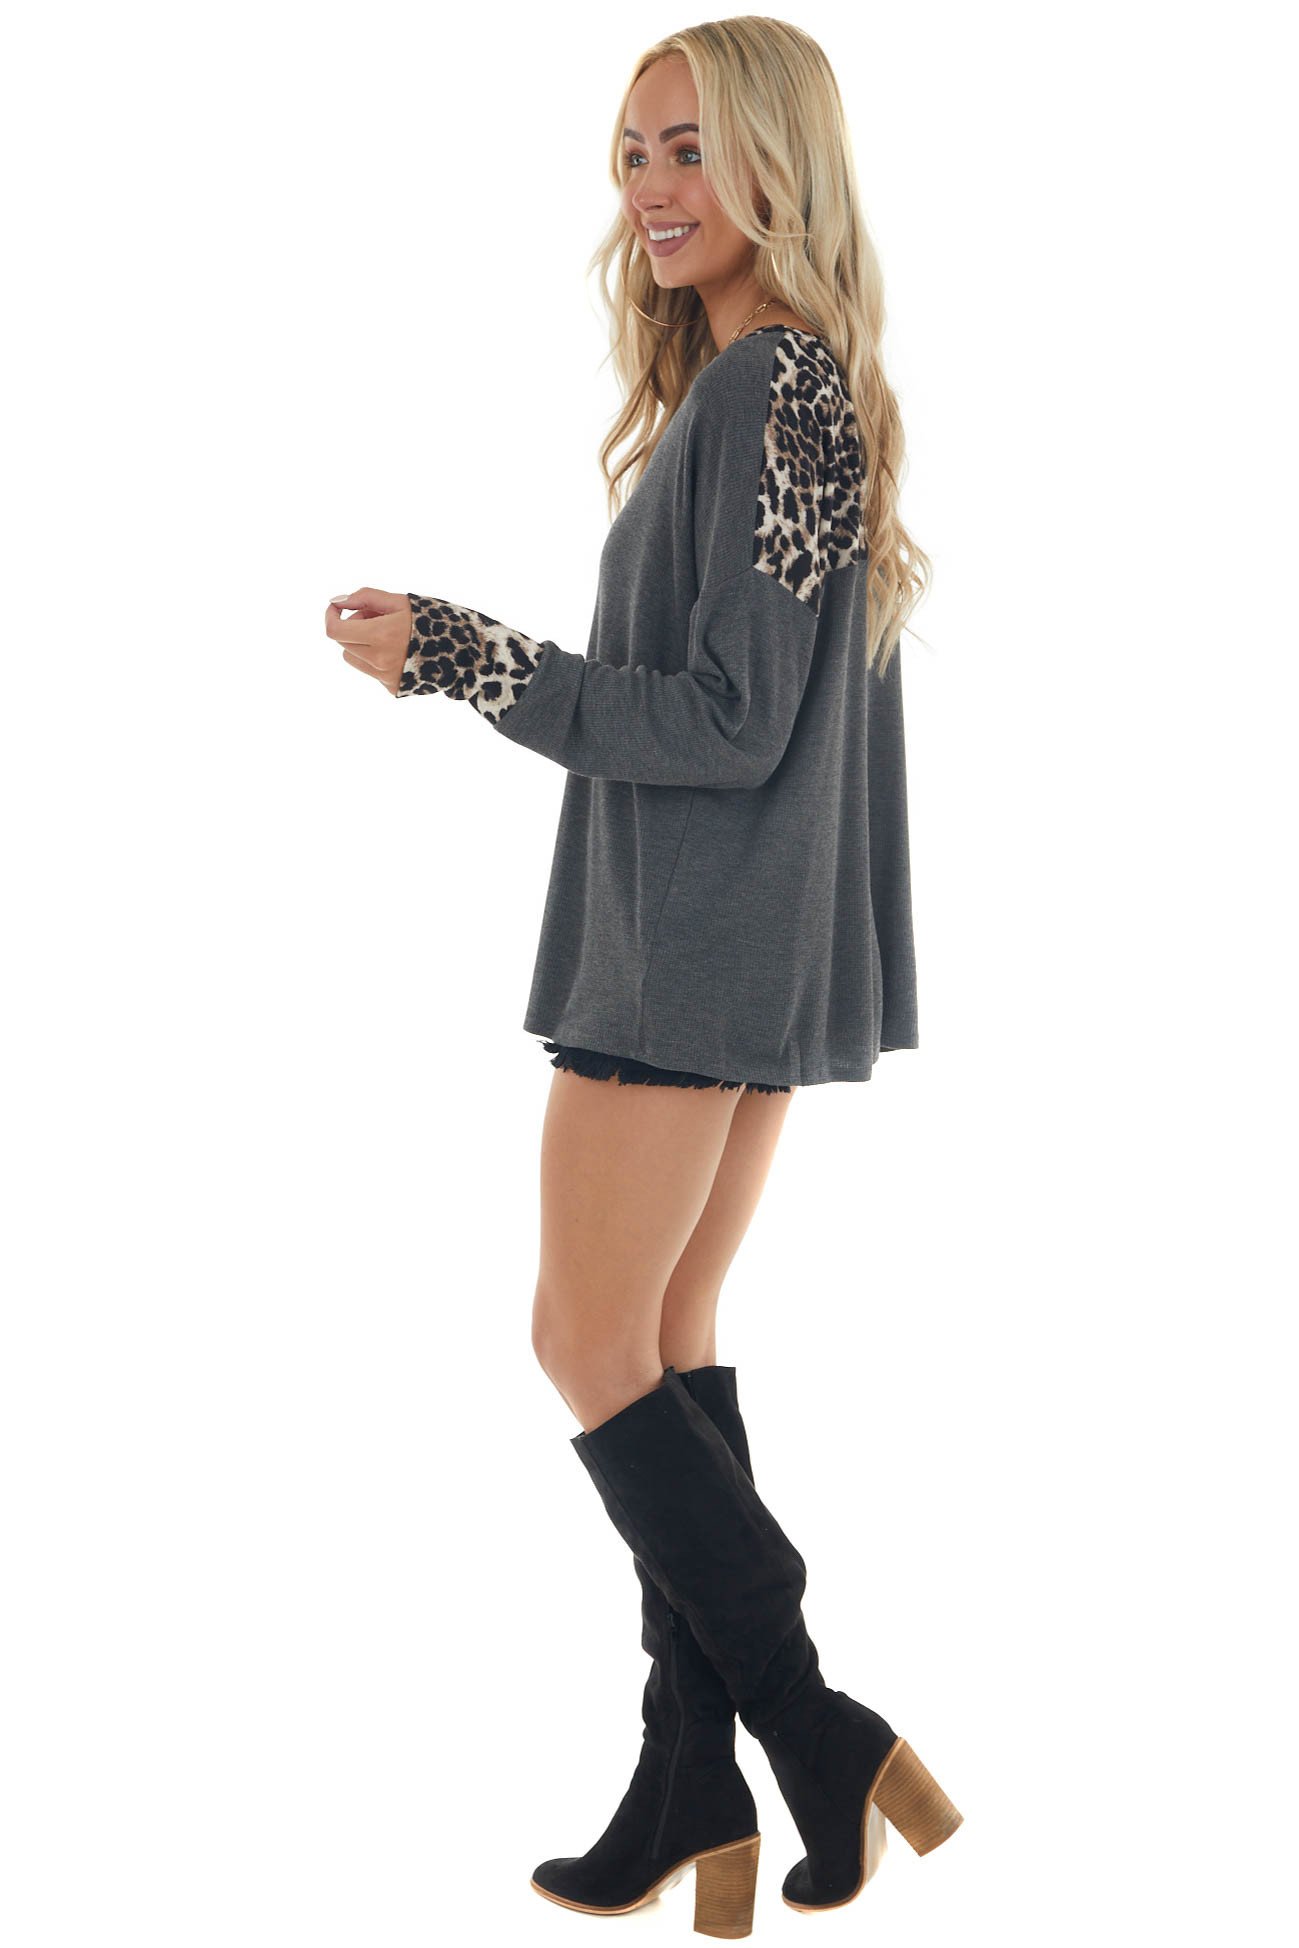 Graphite and Leopard Contrast Thermal Knit Top